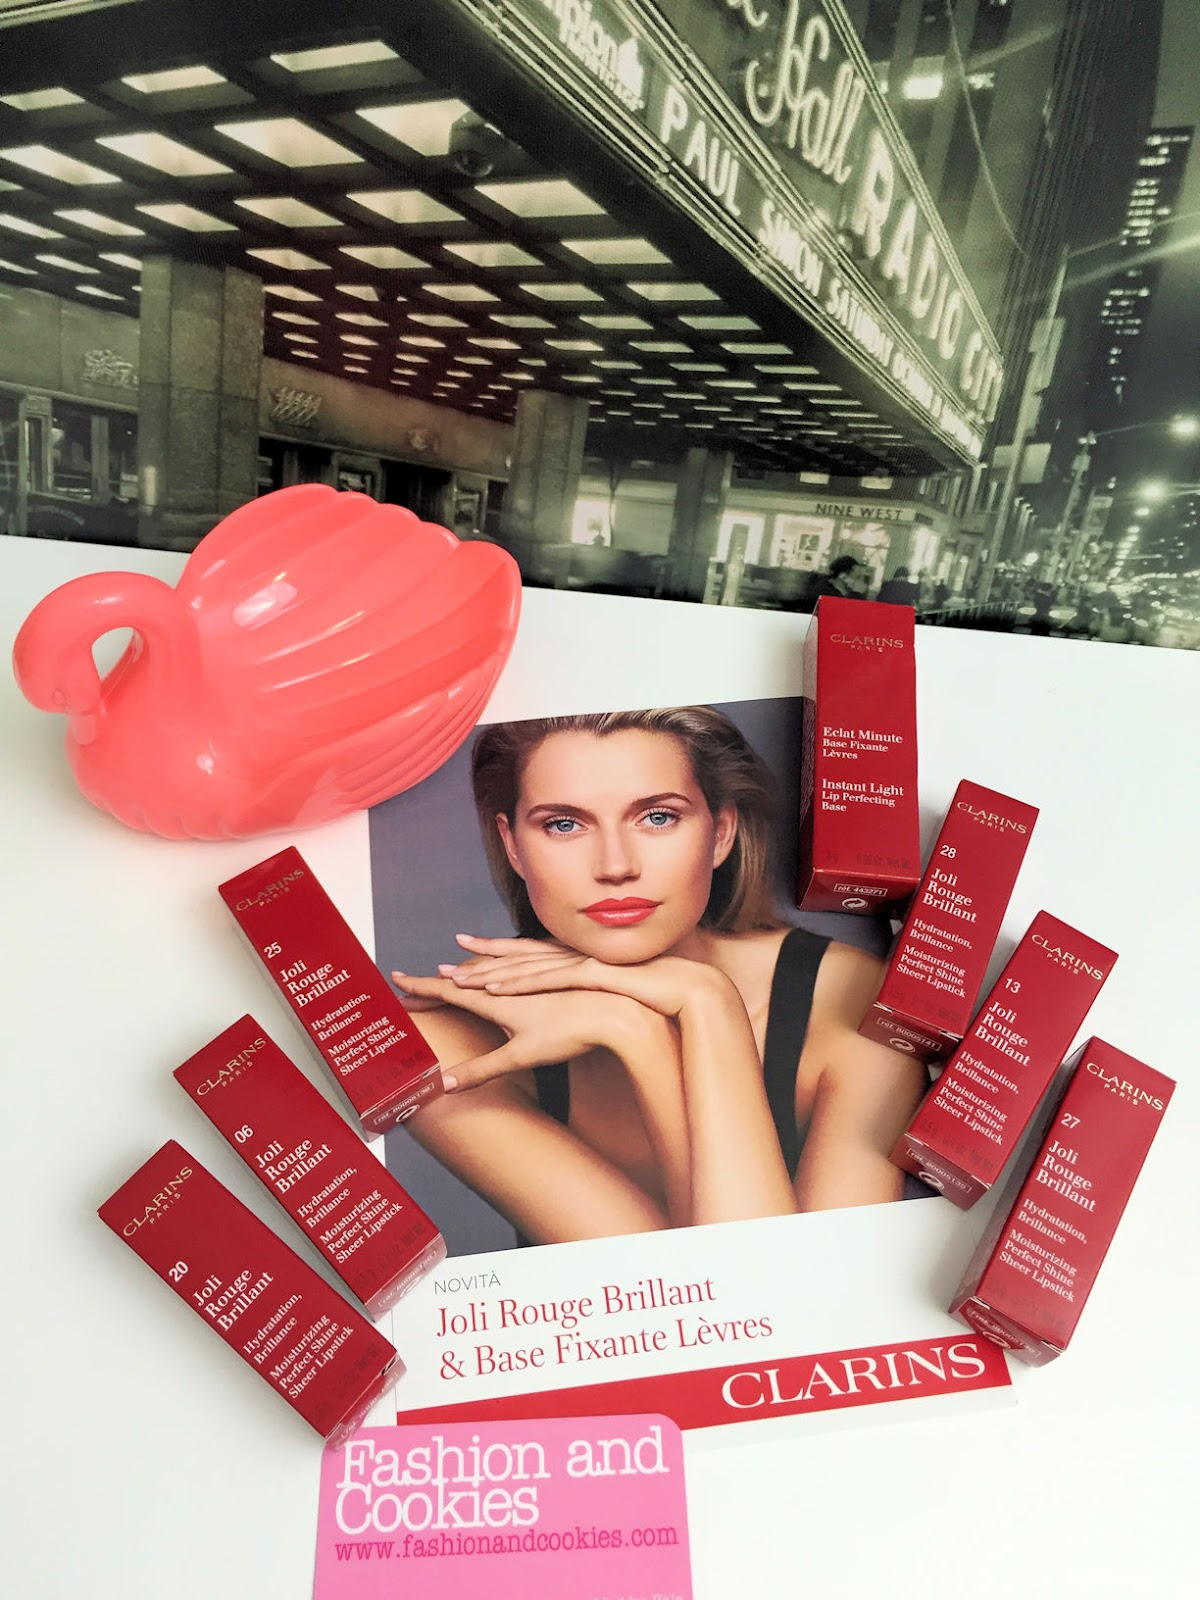 Clarins Joli Rouge Brillant rossetto e trattamento di bellezza per le labbra, base fissante per labbra review e swatches su Fashion and Cookies beauty blog, beauty blogger